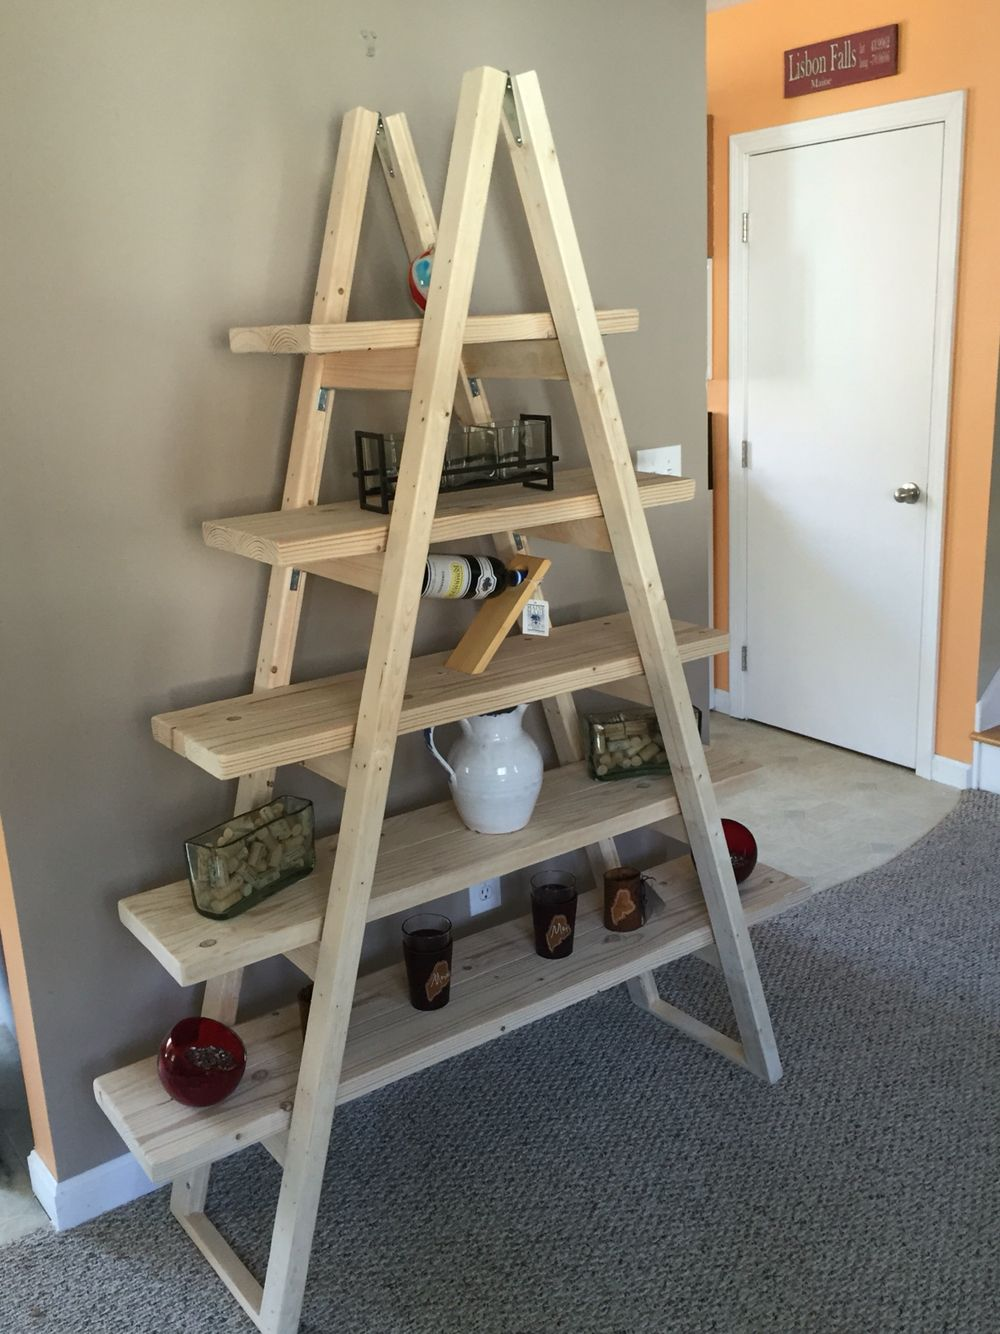 An a-frame shelf built for form and function.  This unfinished shelf will fit into any room and can be finished to match your decor.